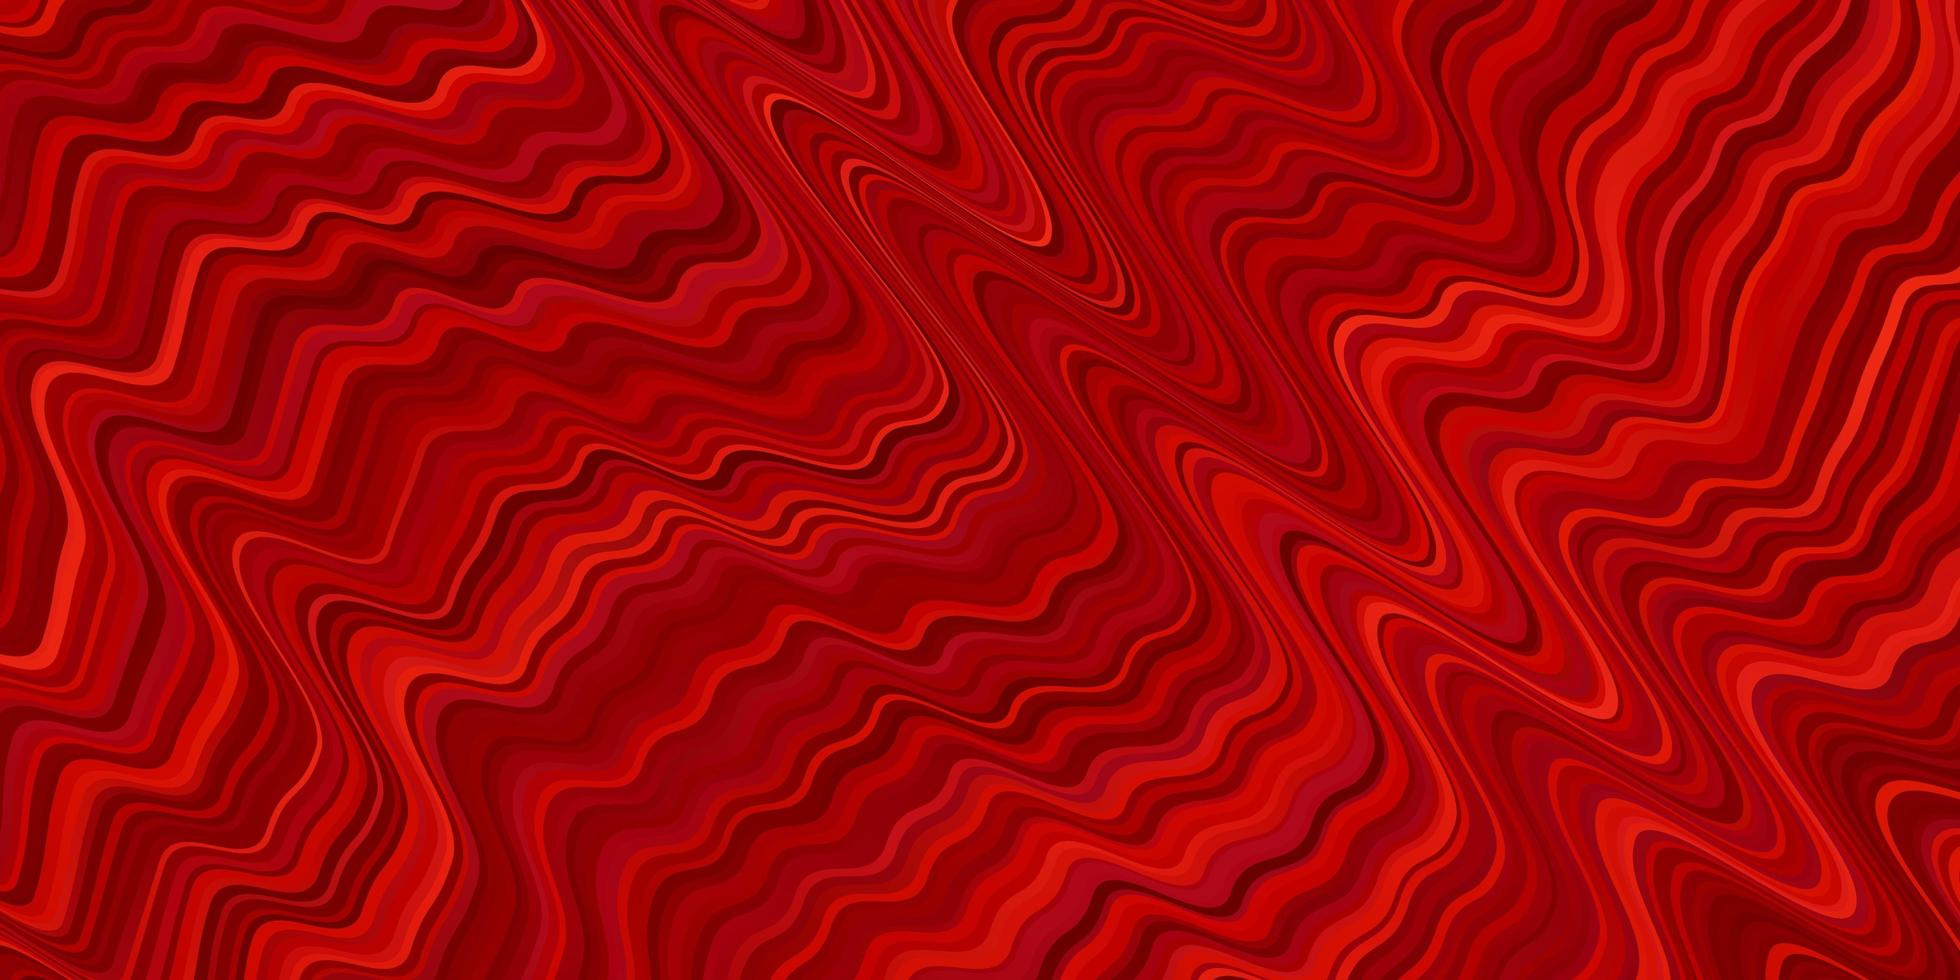 Light Red vector background with lines.